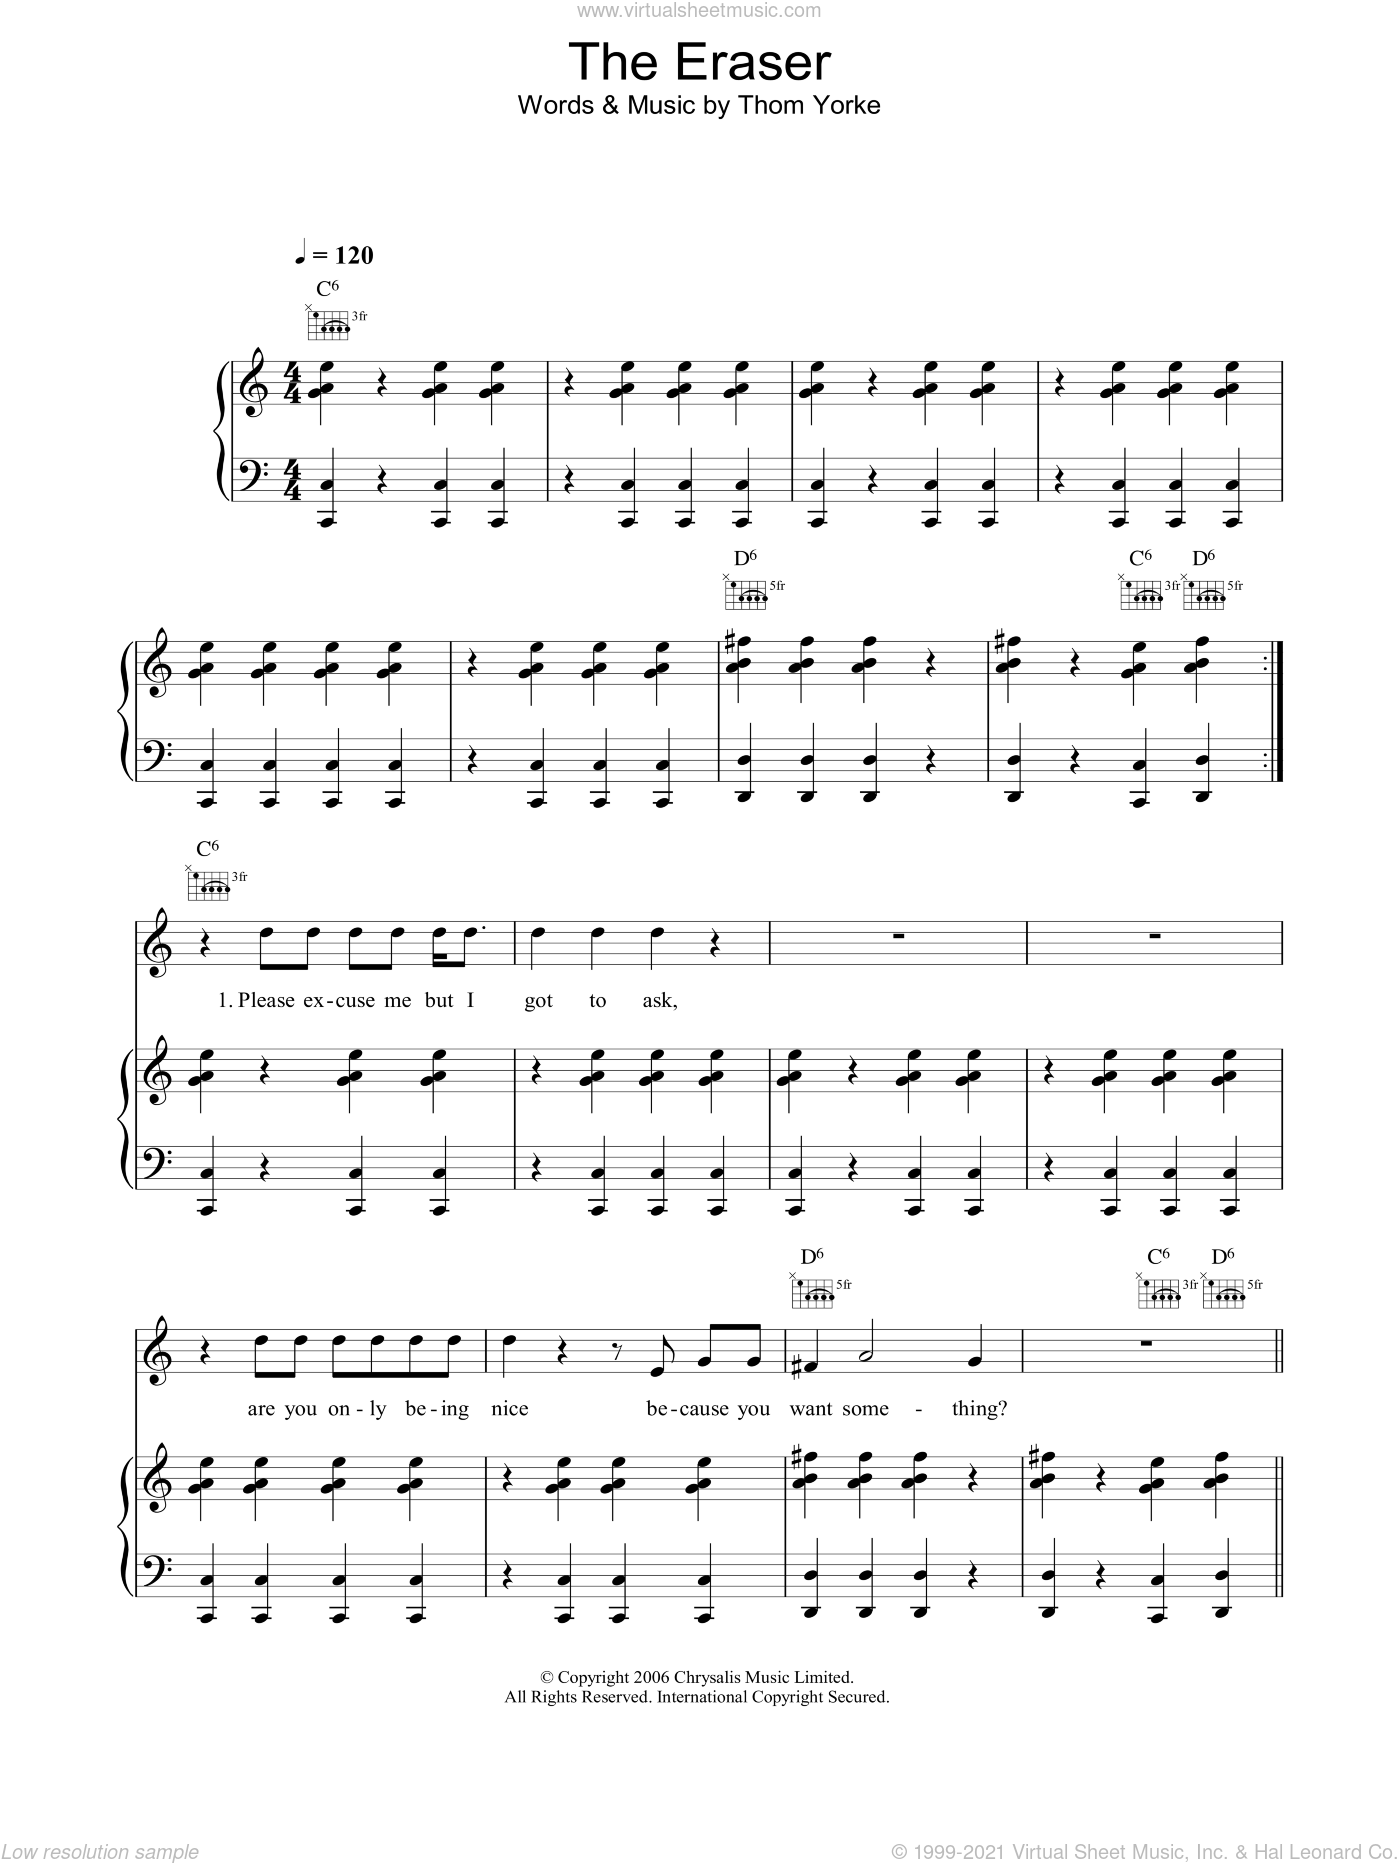 The Eraser sheet music for voice, piano or guitar by Thom Yorke